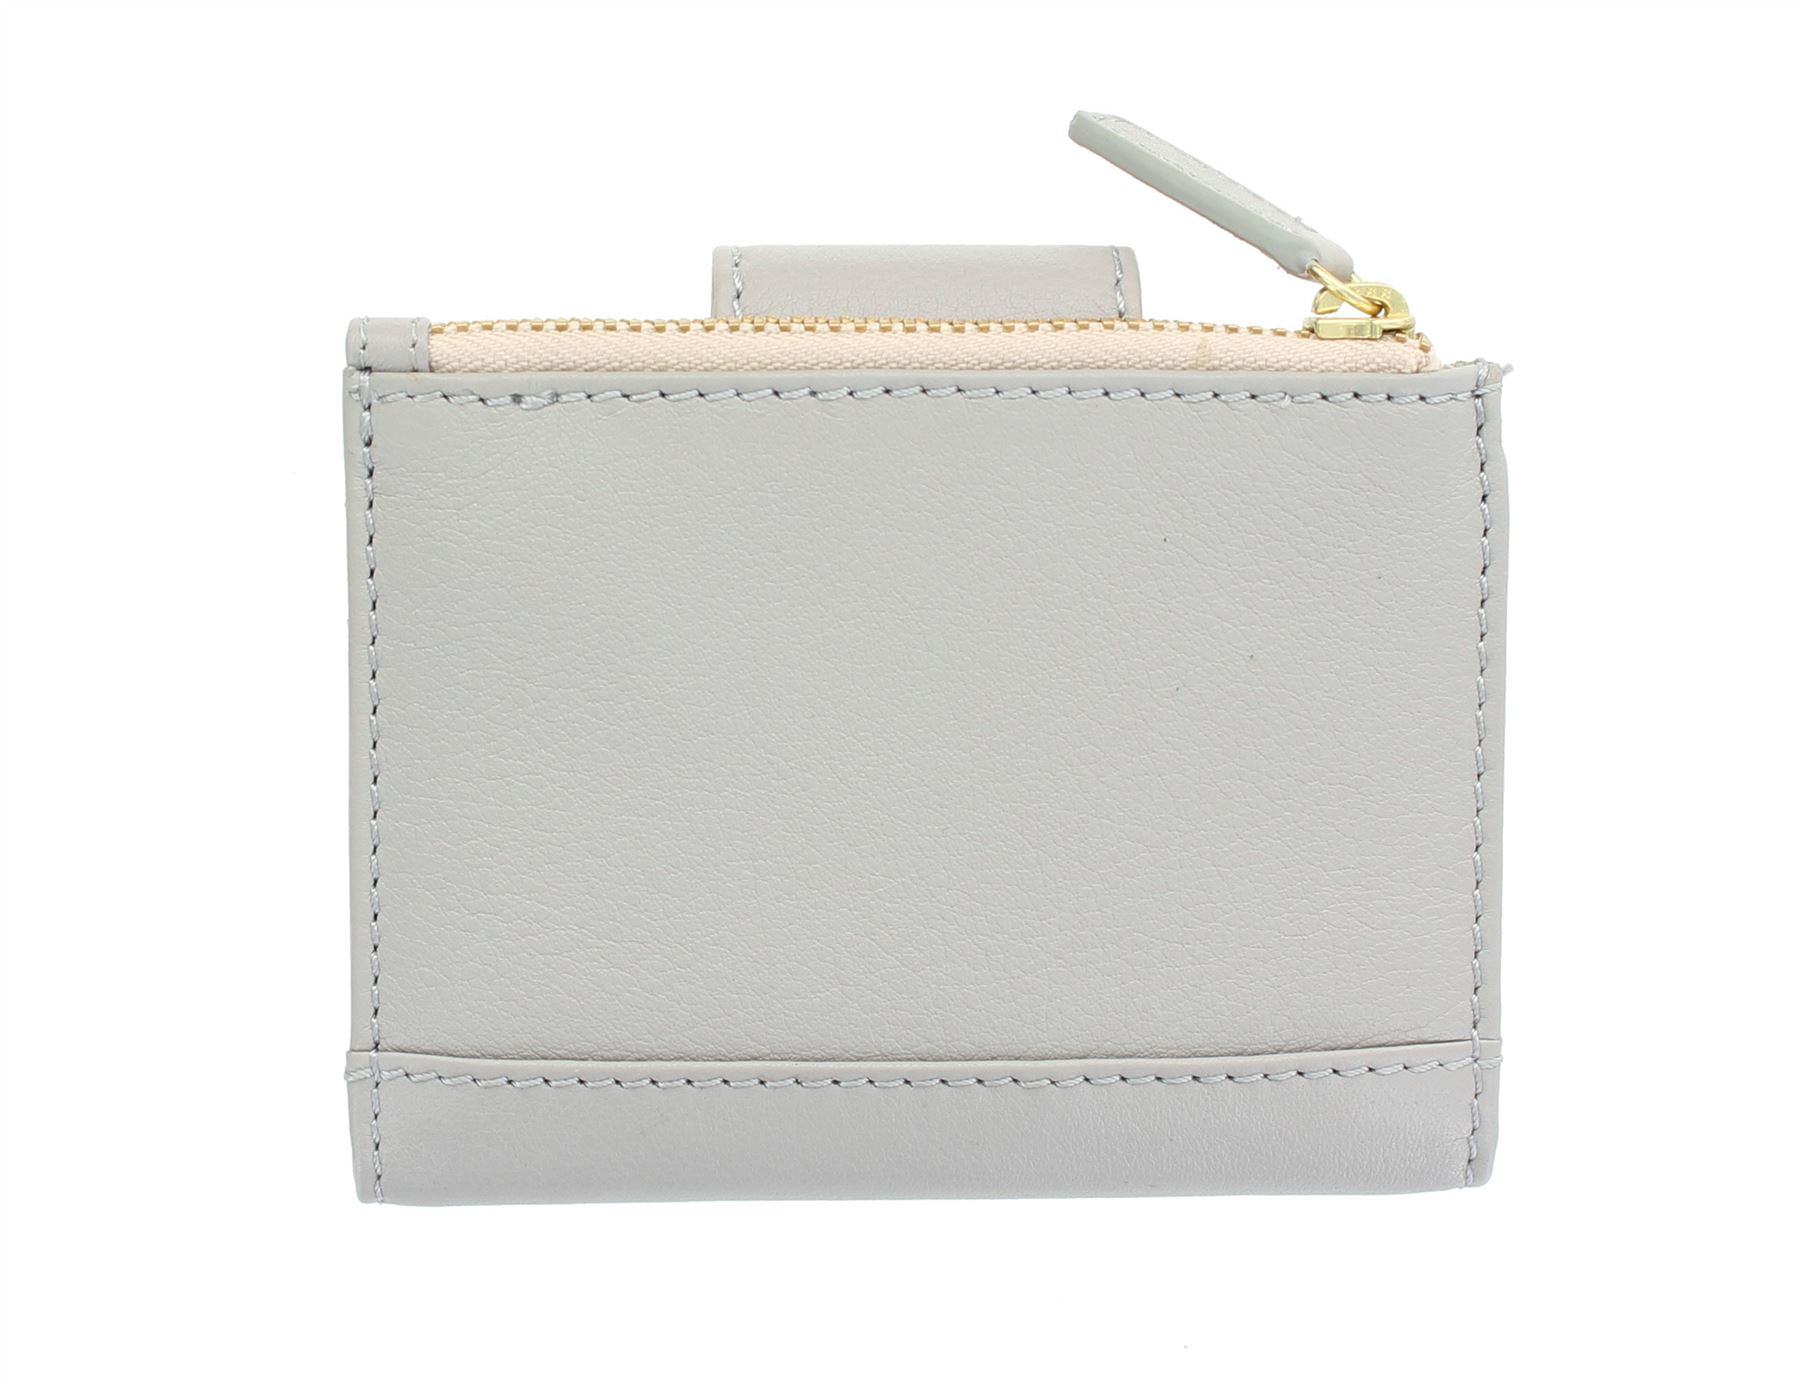 Tula BELLA Collection Leather Credit Card Holder / Coin Purse 7665 ...